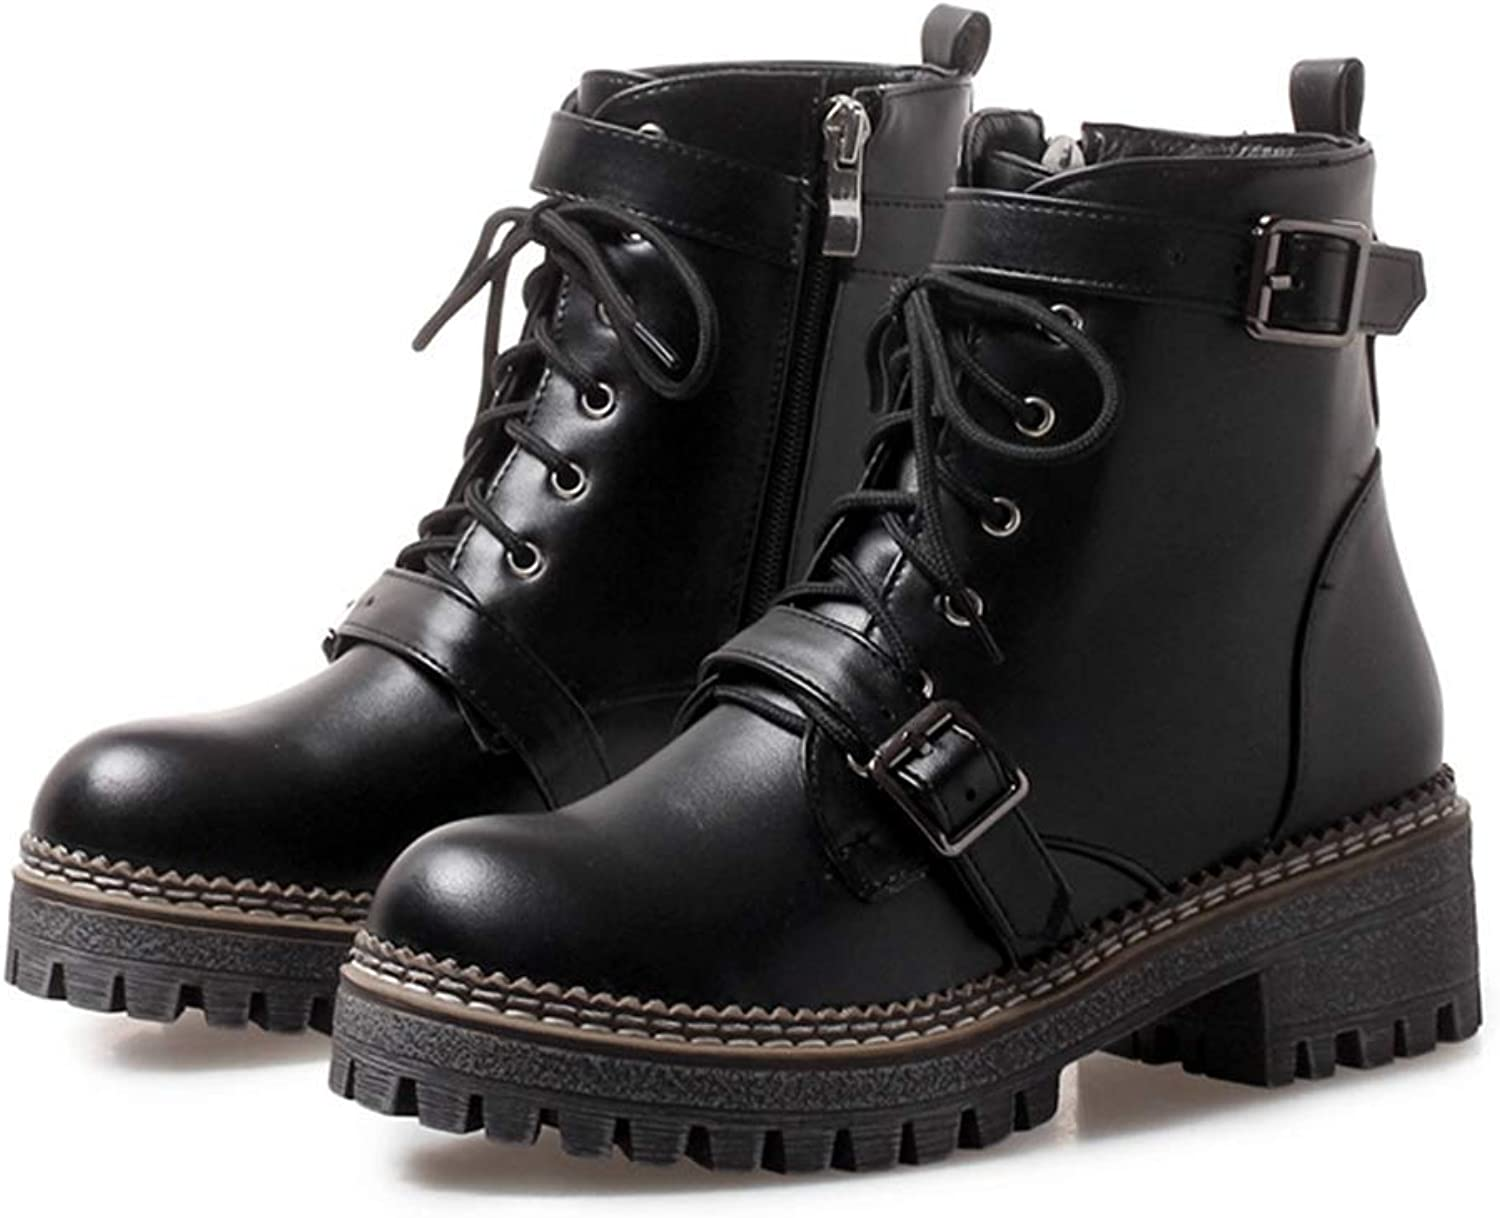 Fashion shoesbox Women's Platform Martin Boots Round Toe Side Zip Ankle Boots Ladies Leather Combat Booties Winter Motorcycle Boots